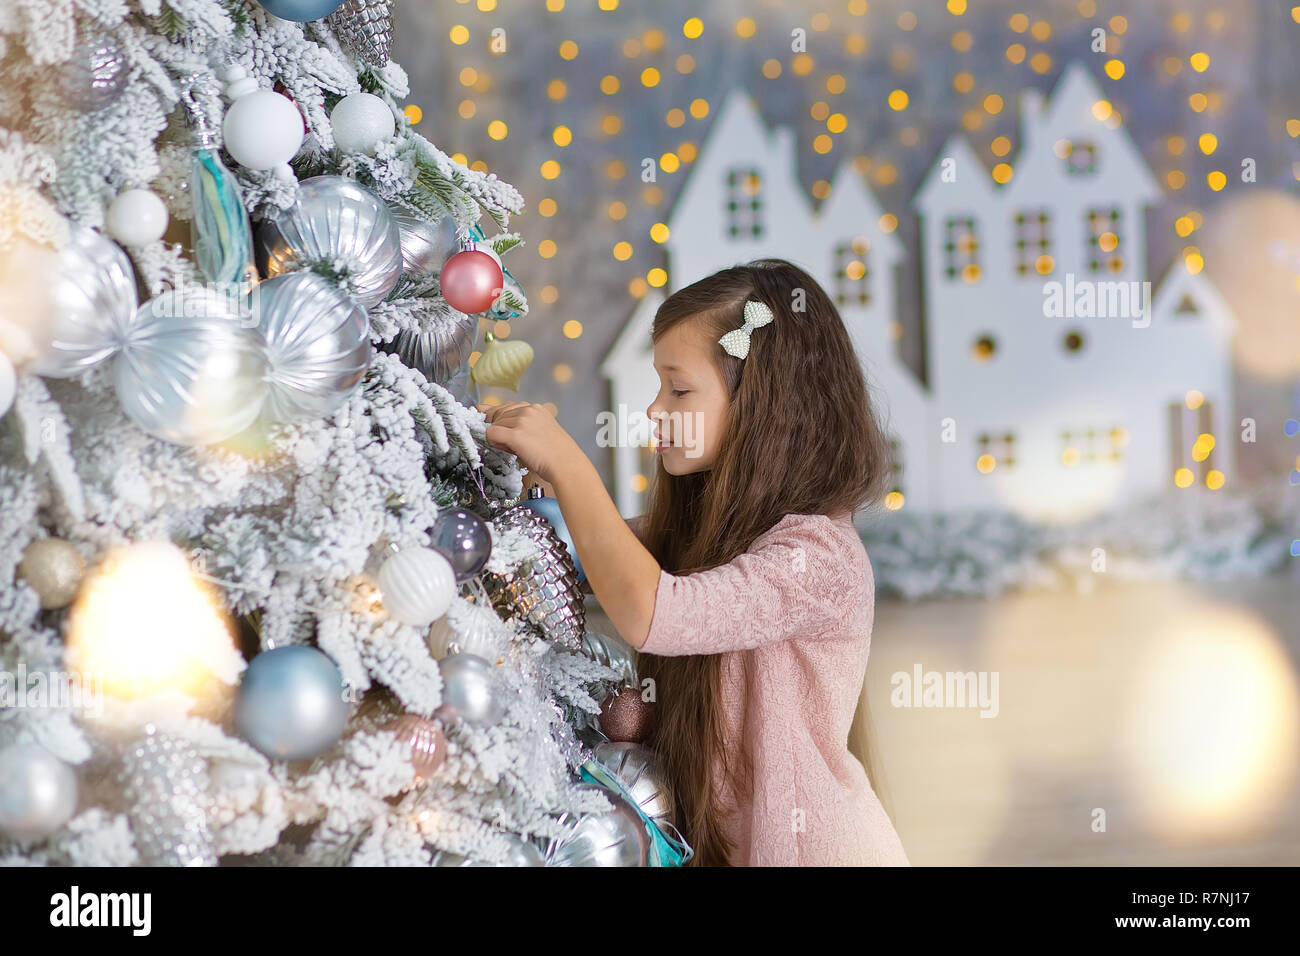 Cute girl near the Christmas tree enjoy miracle winter time. Christmas concept. Belief in miracles - Stock Image